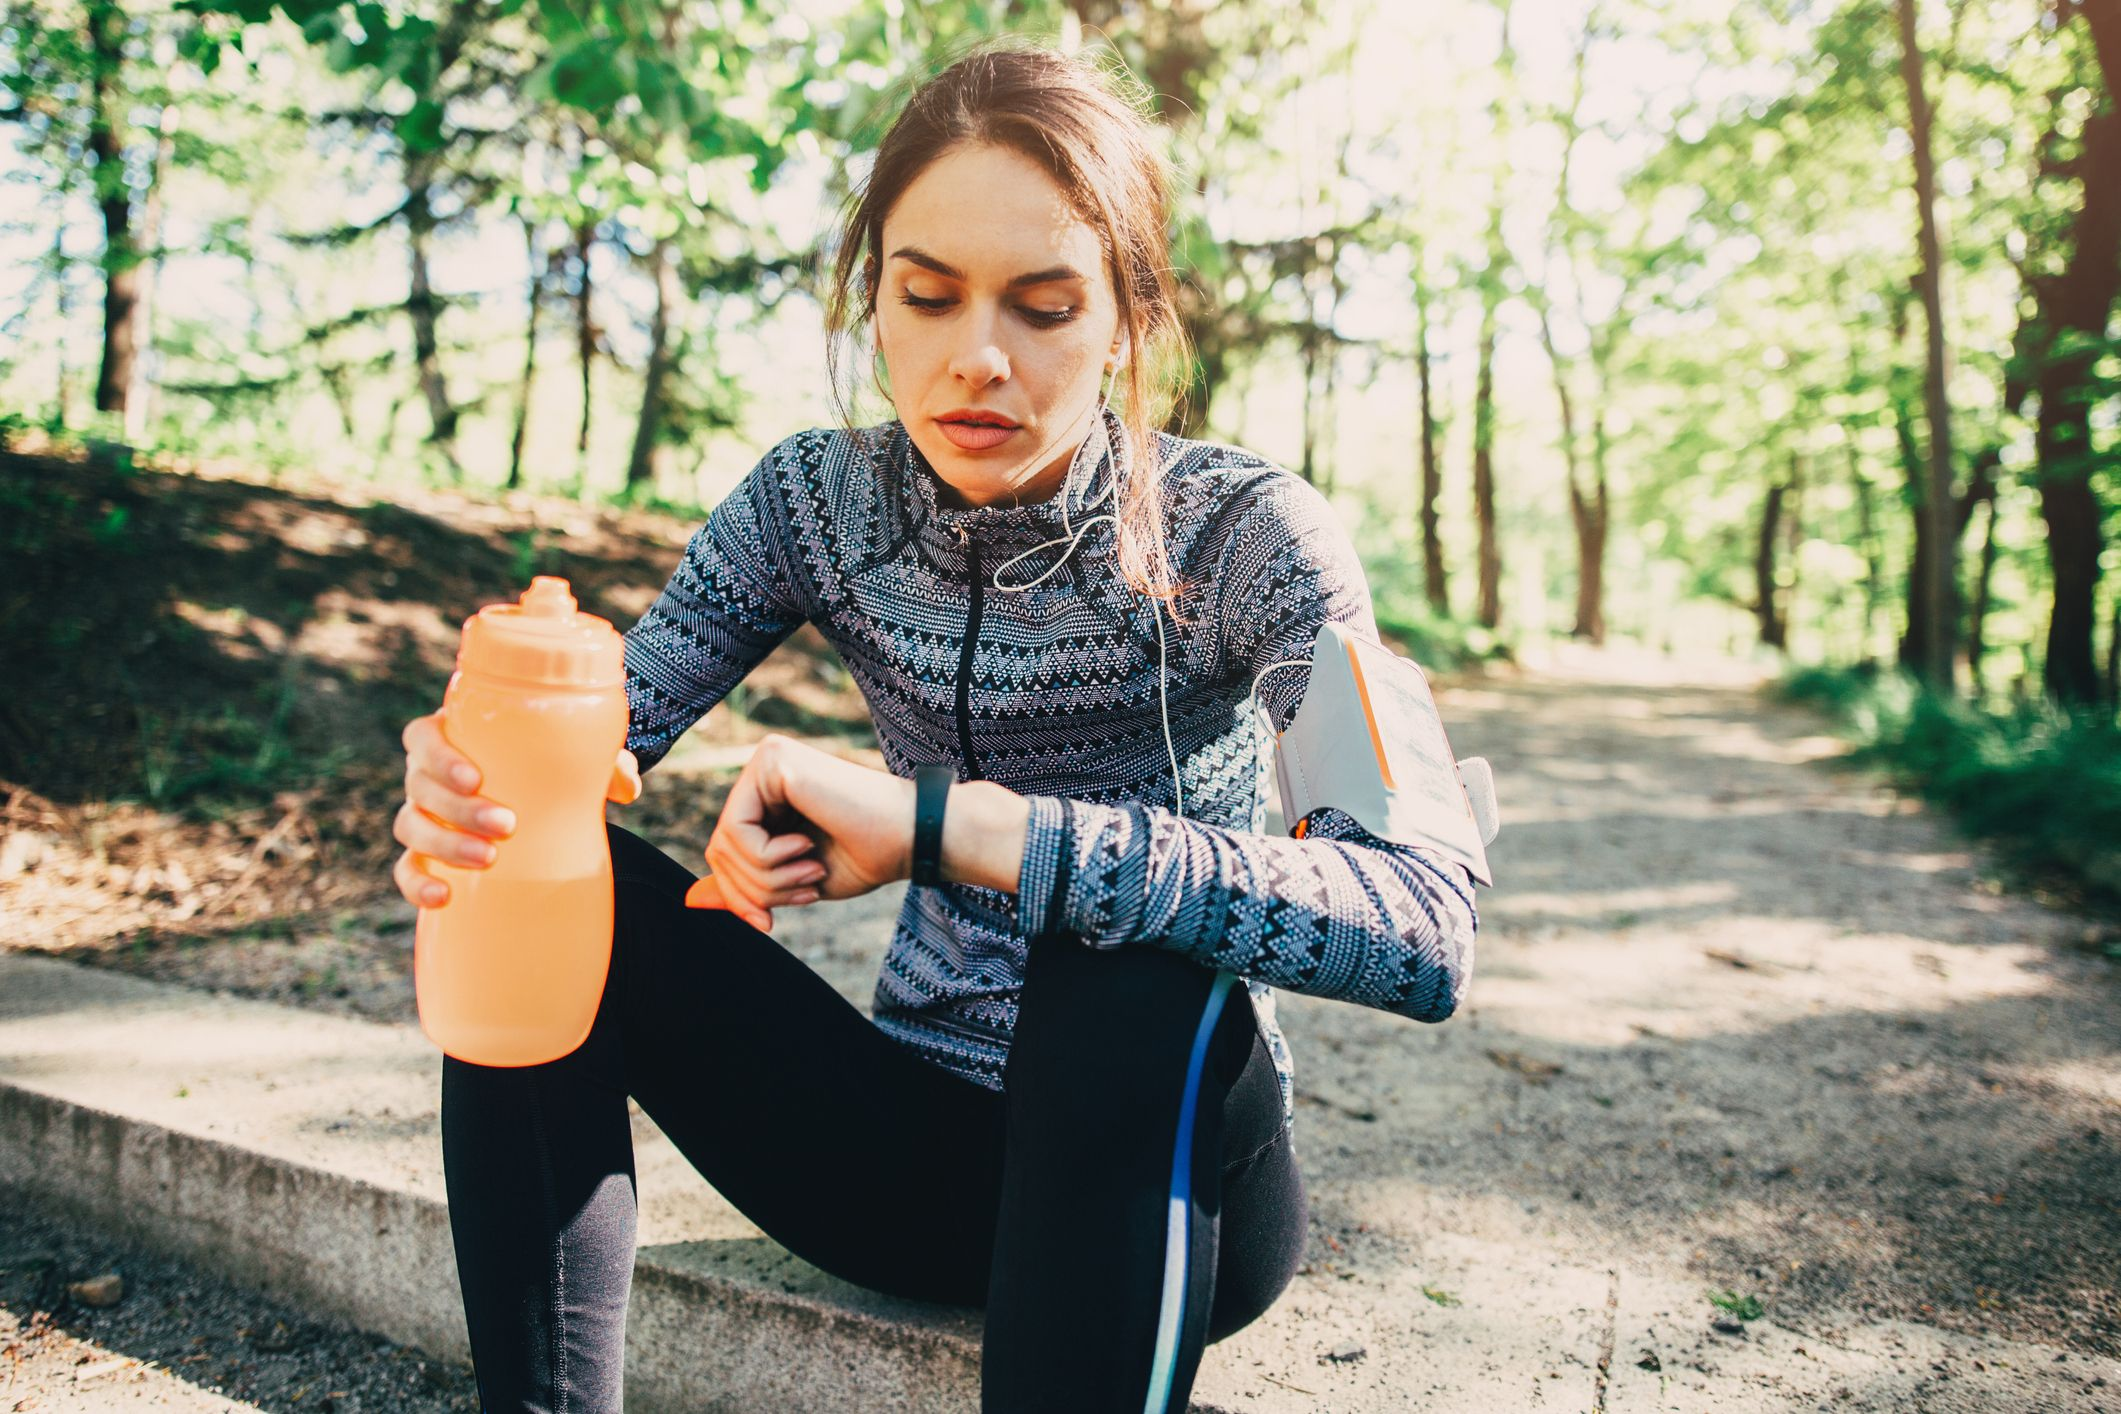 6 Key Signs of Dehydration You Should Know About